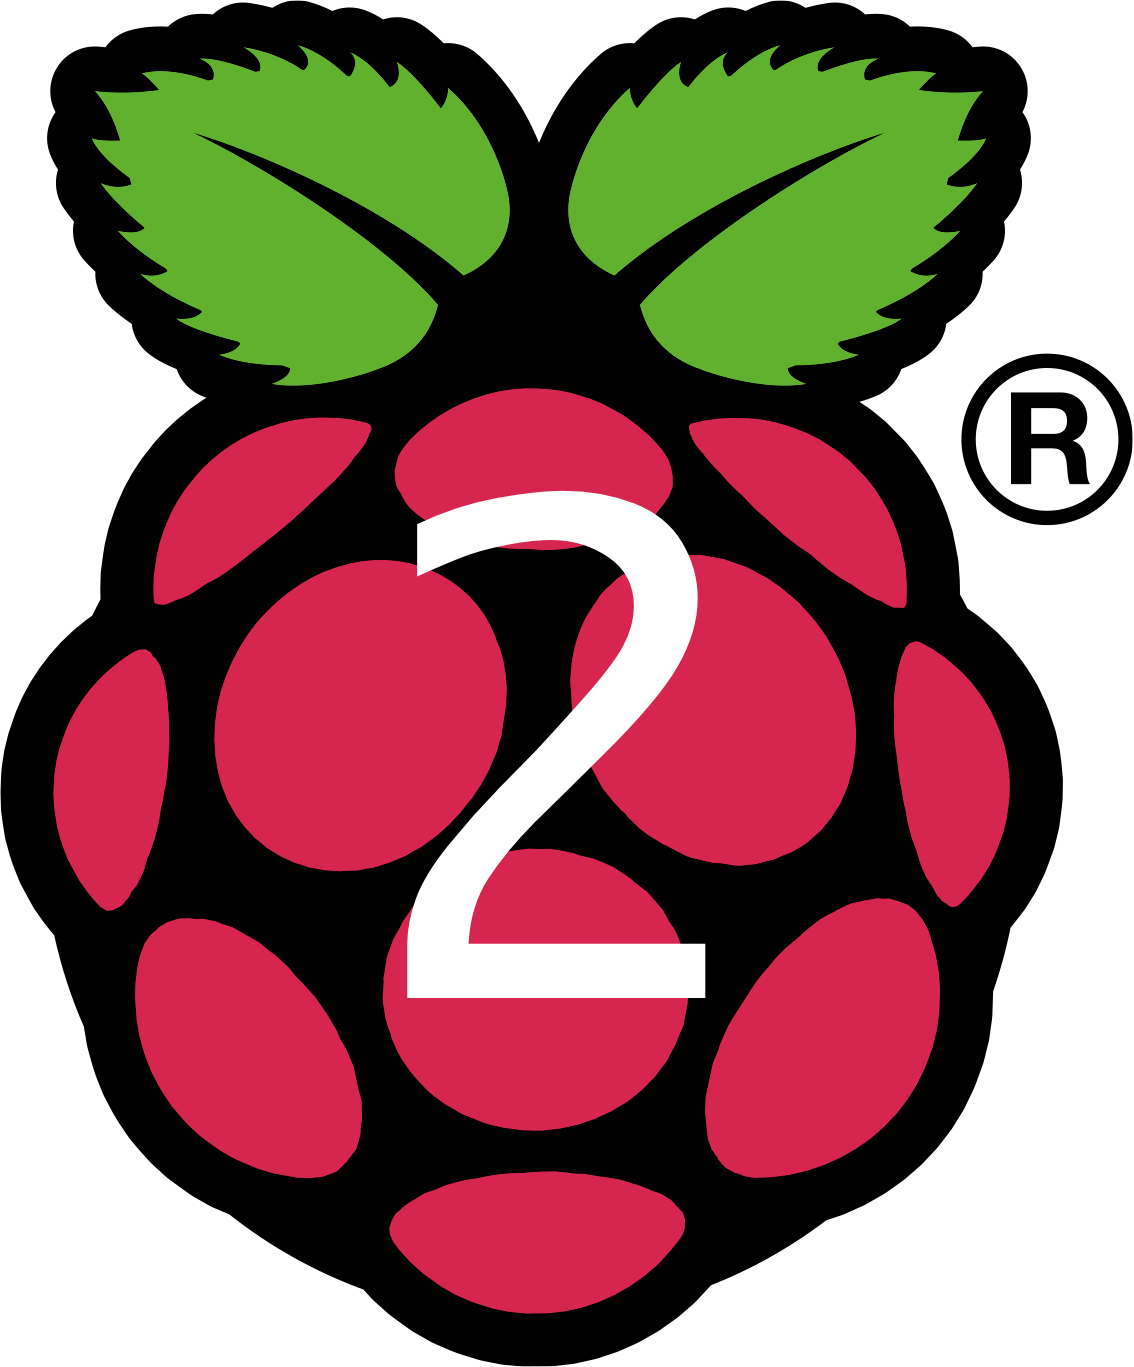 Getting Started with Raspberry Pi Part 2